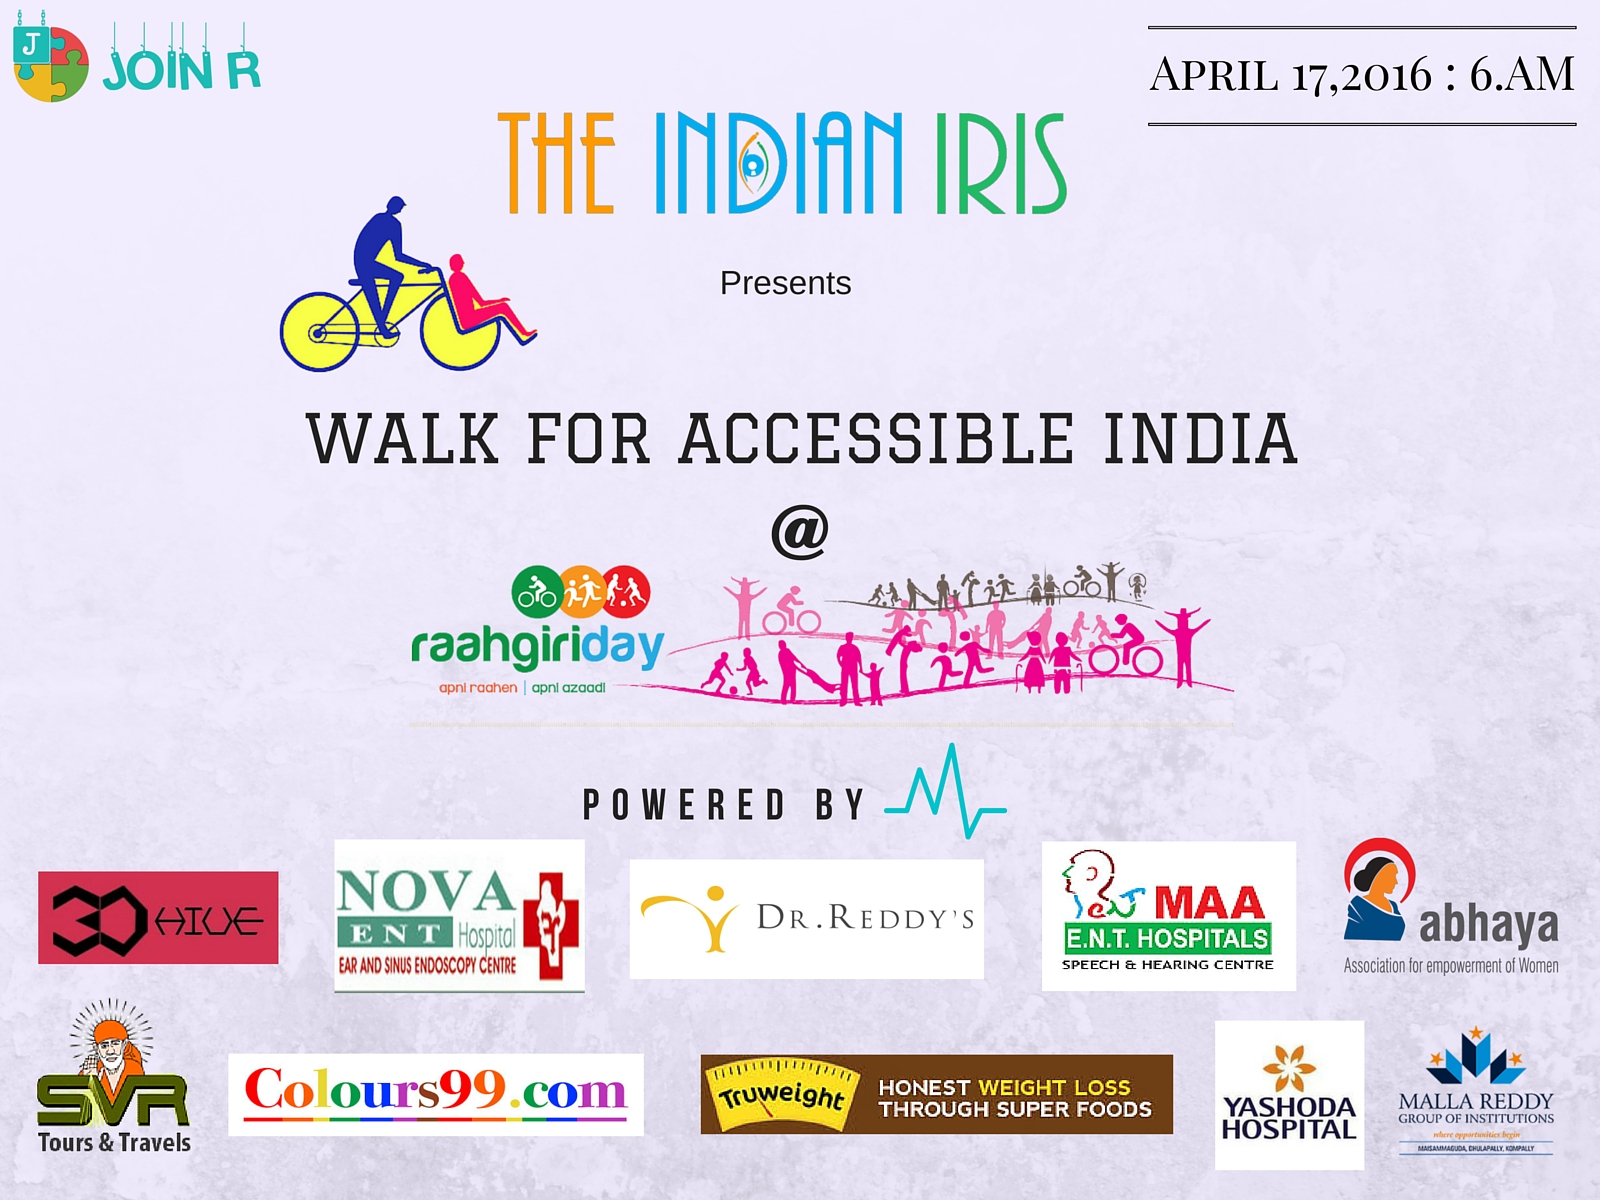 Walk for Accesible India (1)